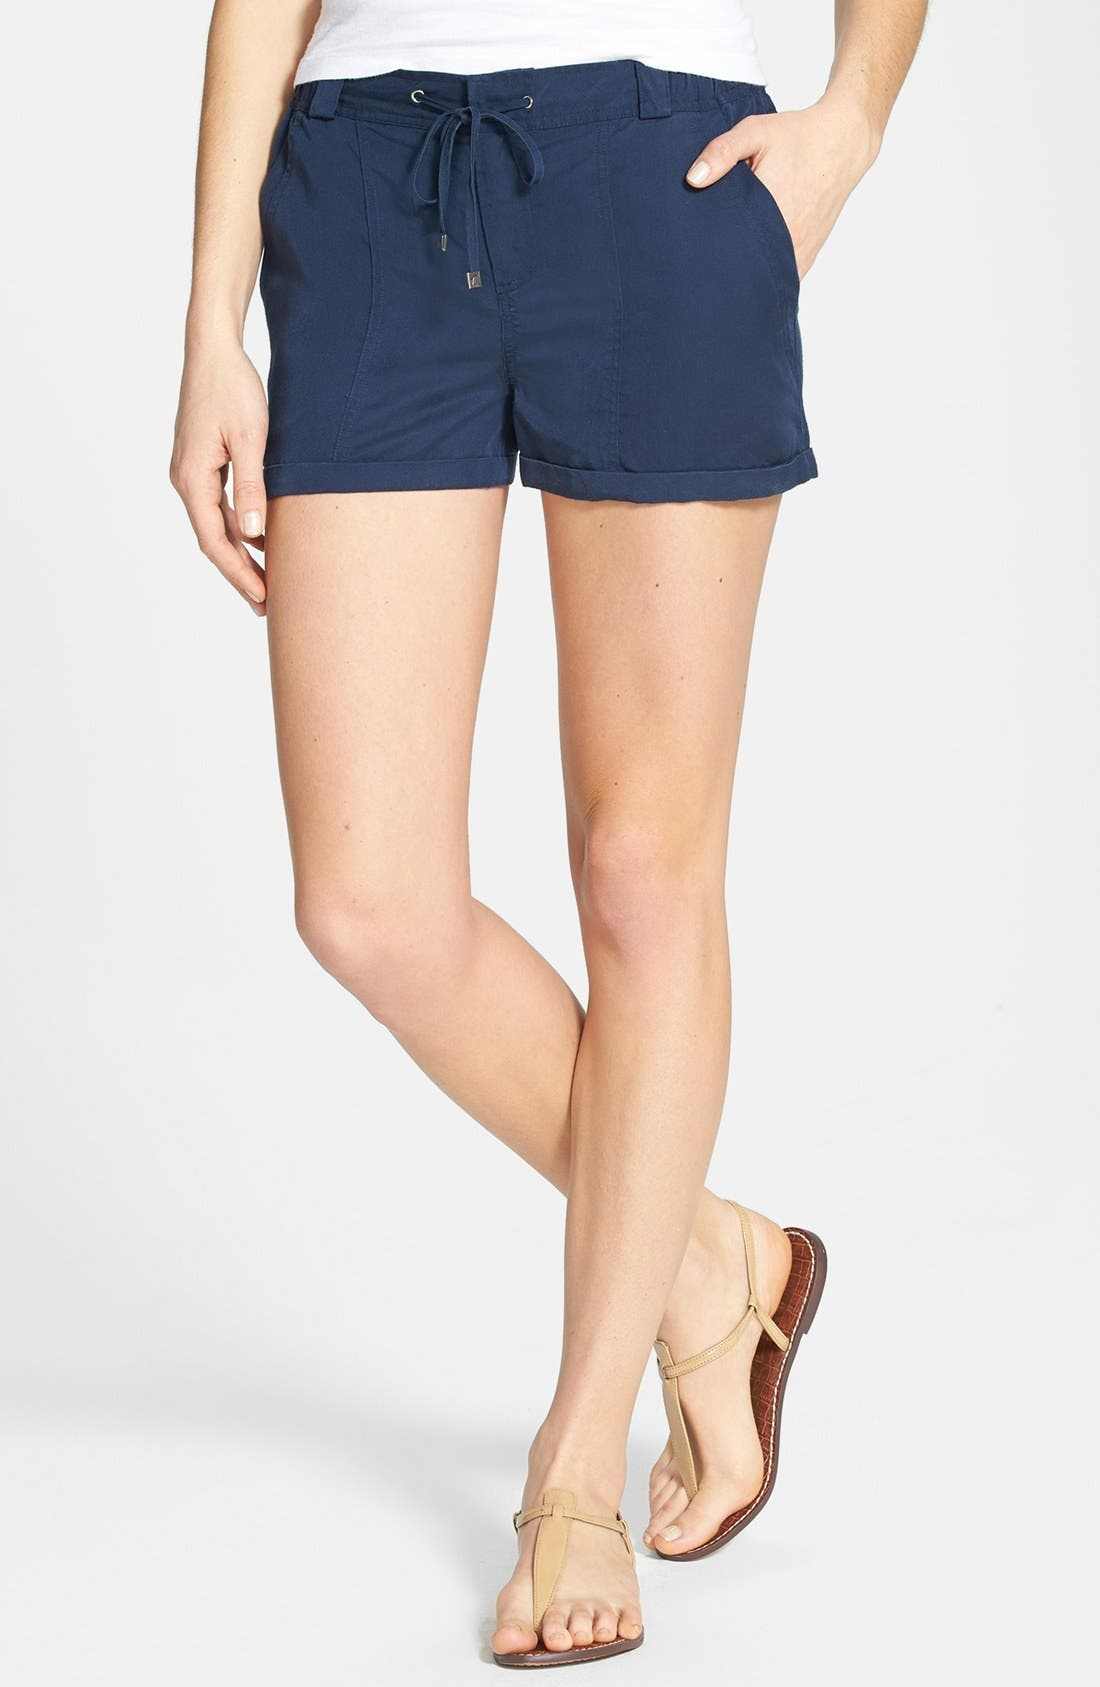 Alternate Image 1 Selected - Two by Vince Camuto Cuff Drawstring Shorts